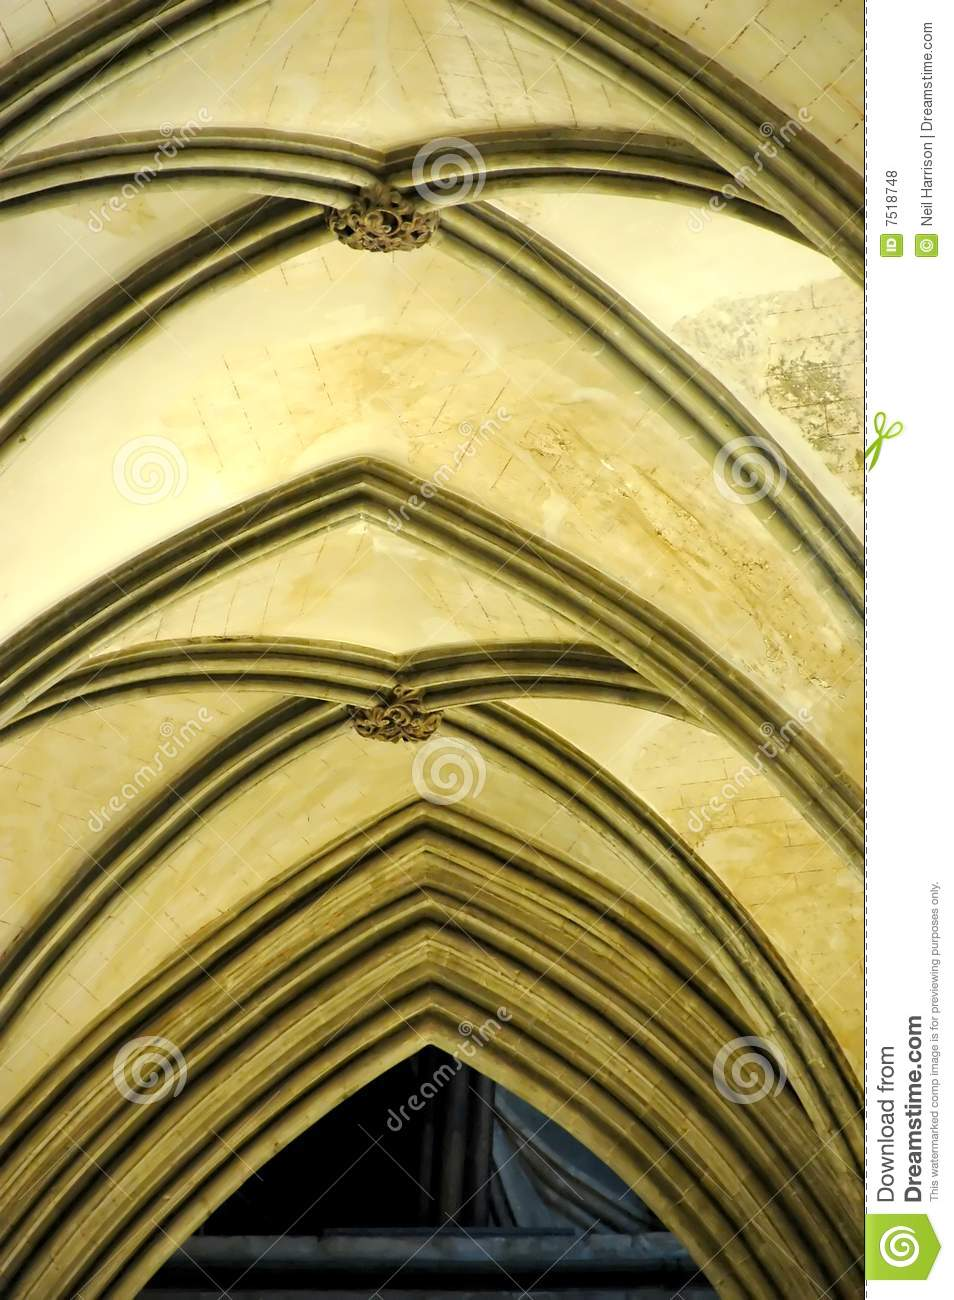 Vaulted Ceiling In A Gothic Cathedral Royalty Free Stock